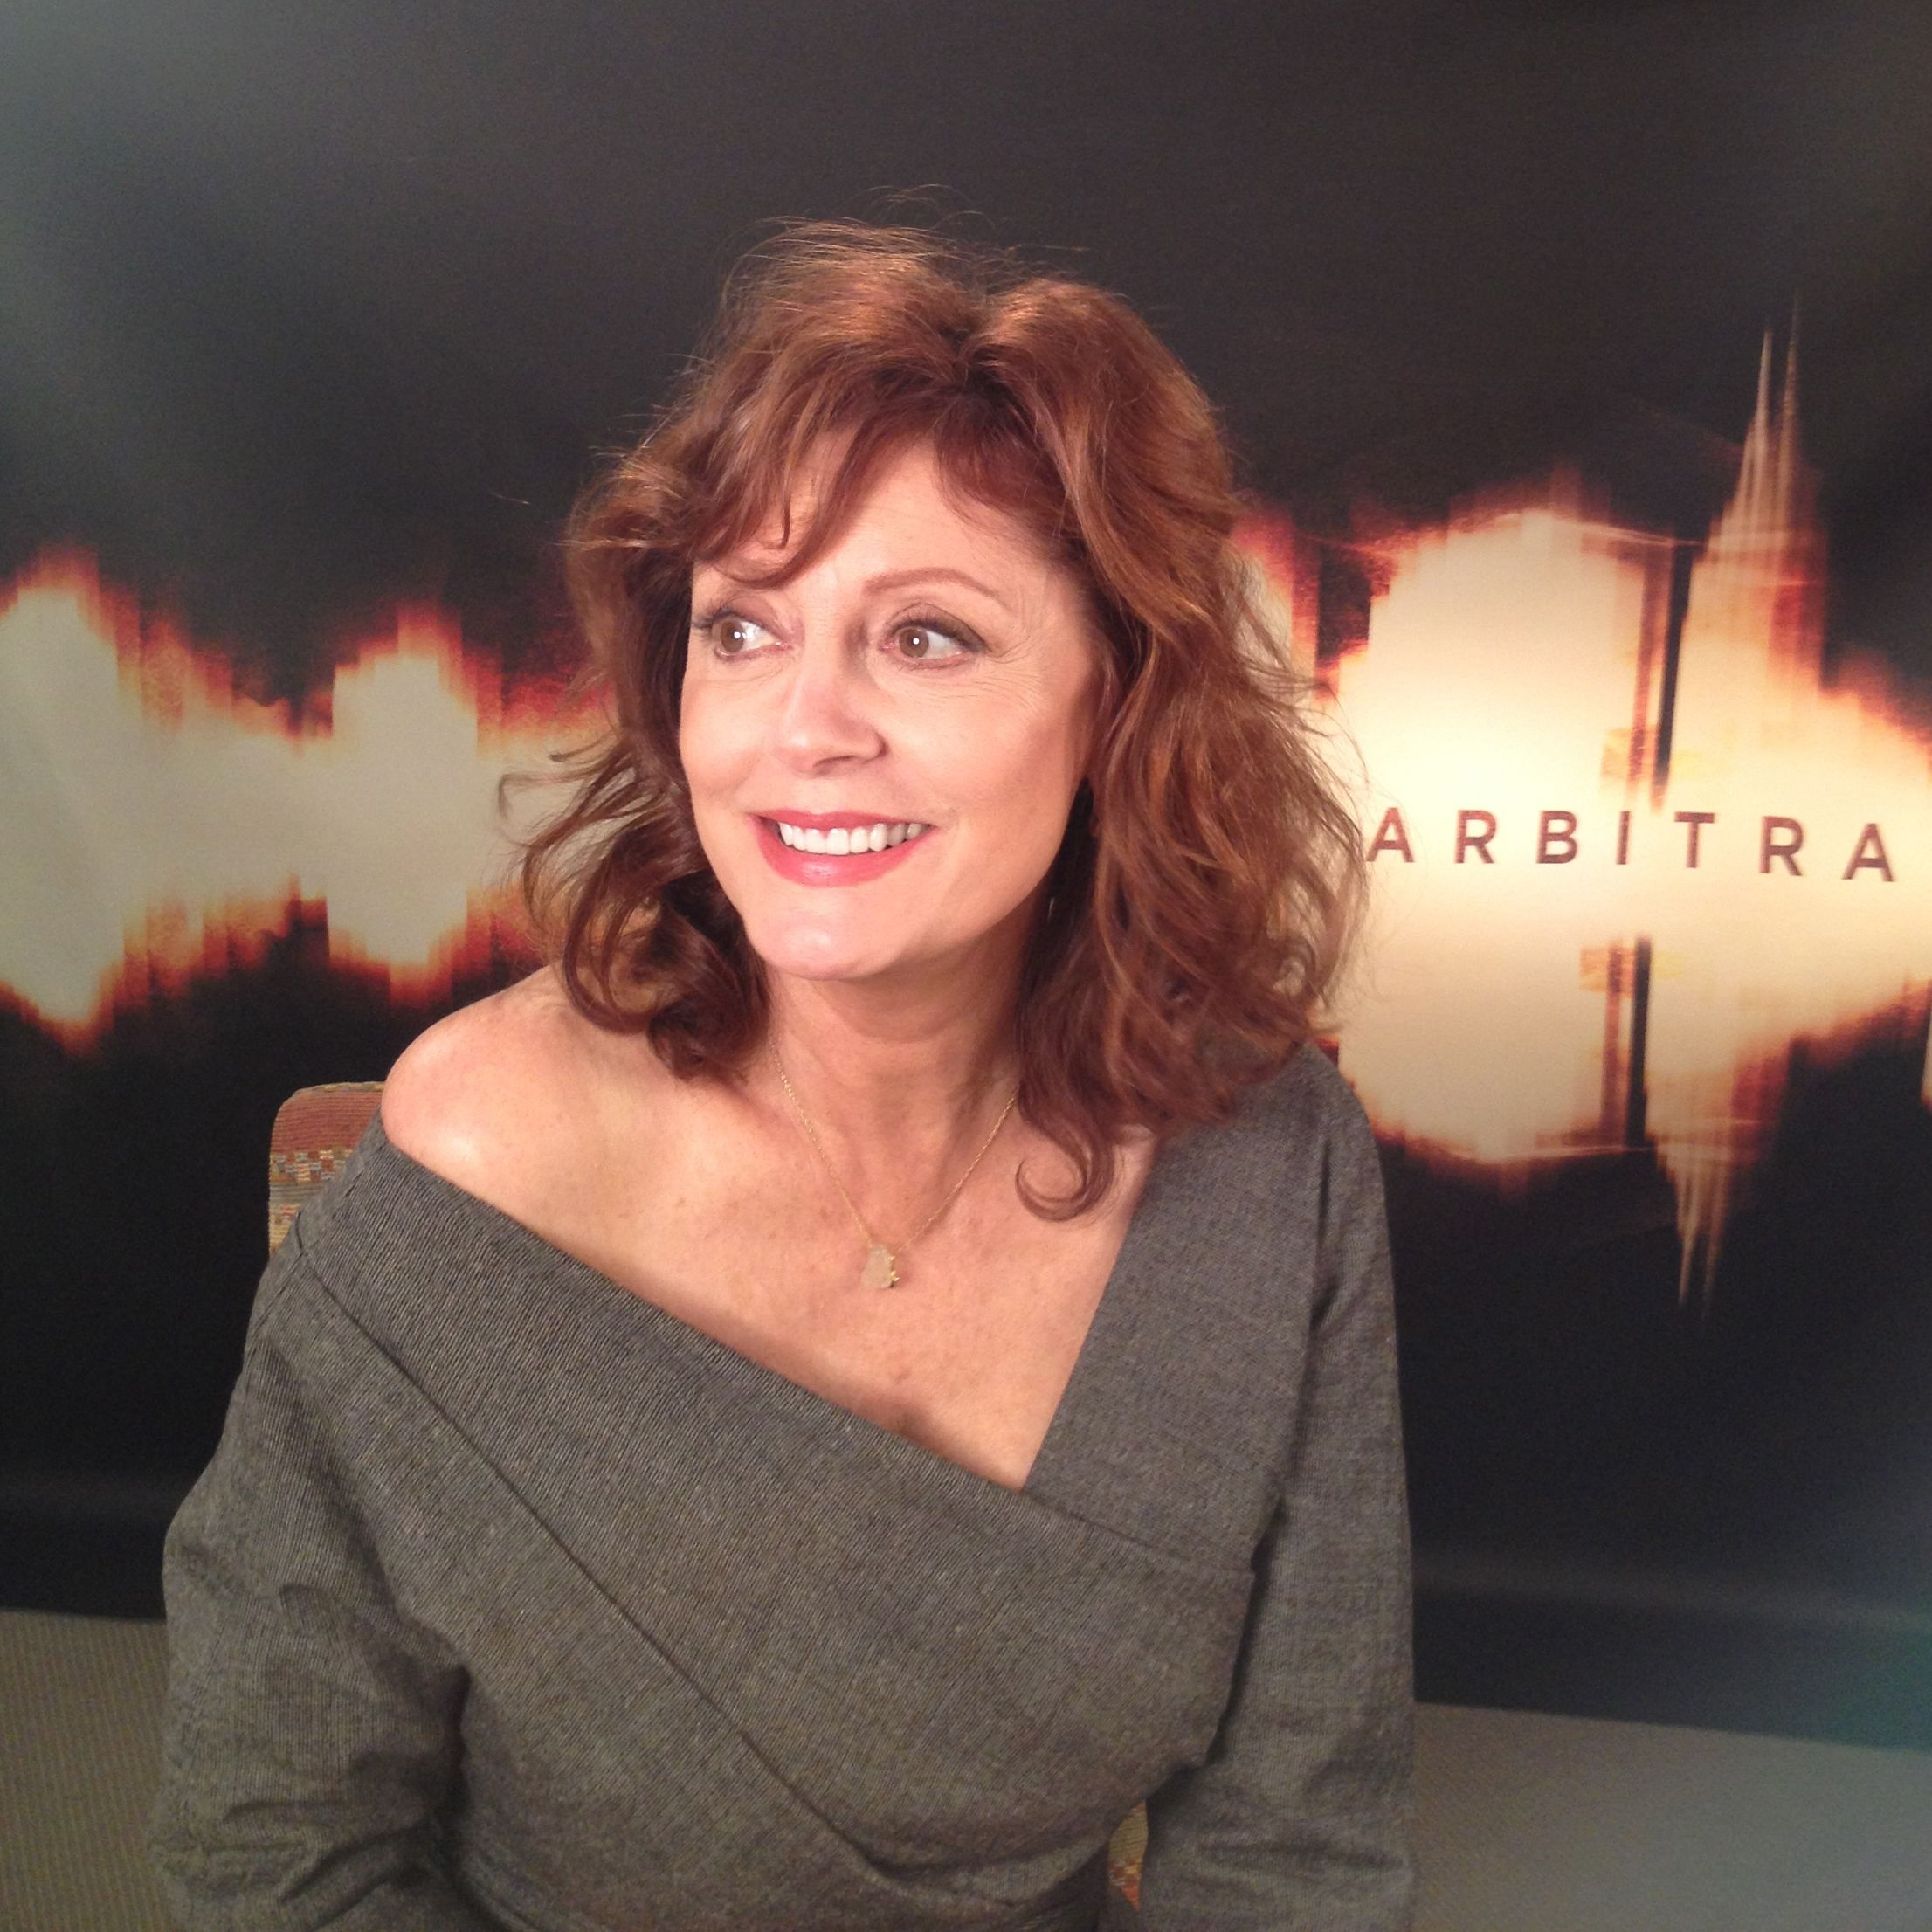 Susan Sarandon Defends Trump Supporters, Gets Attacked